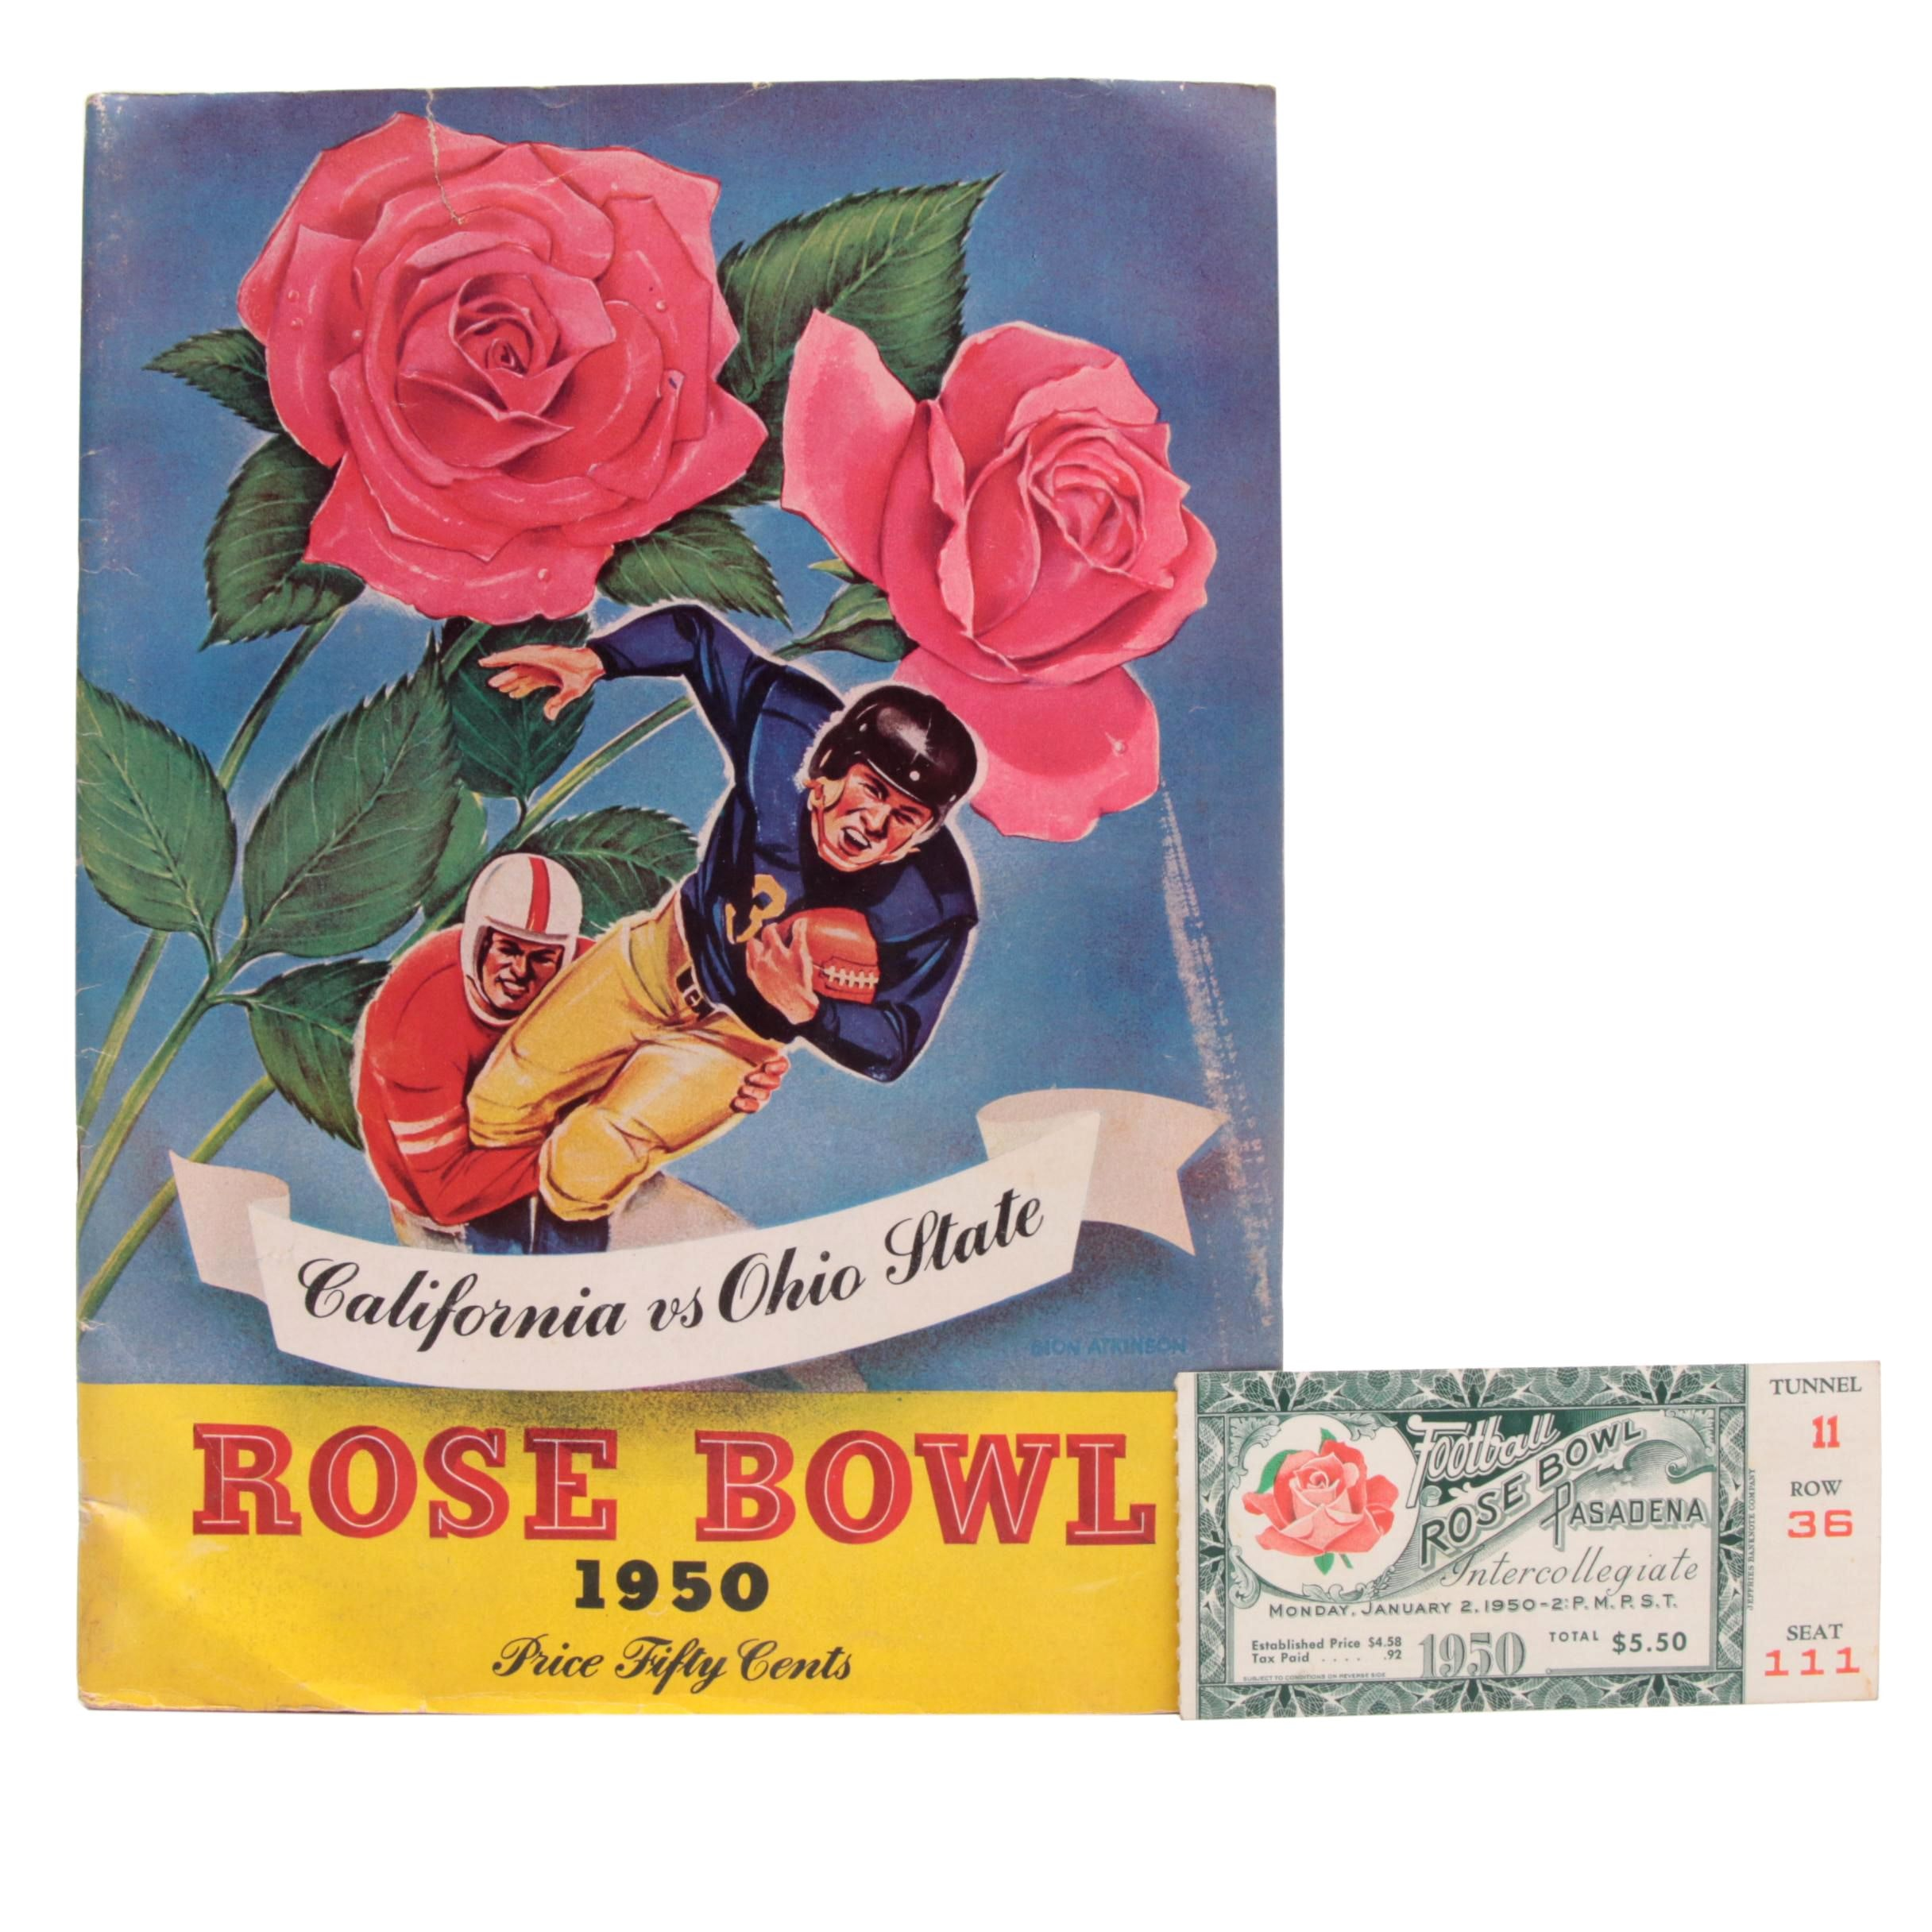 1950 Pose Bowl Football Game Program and Ticket Stub